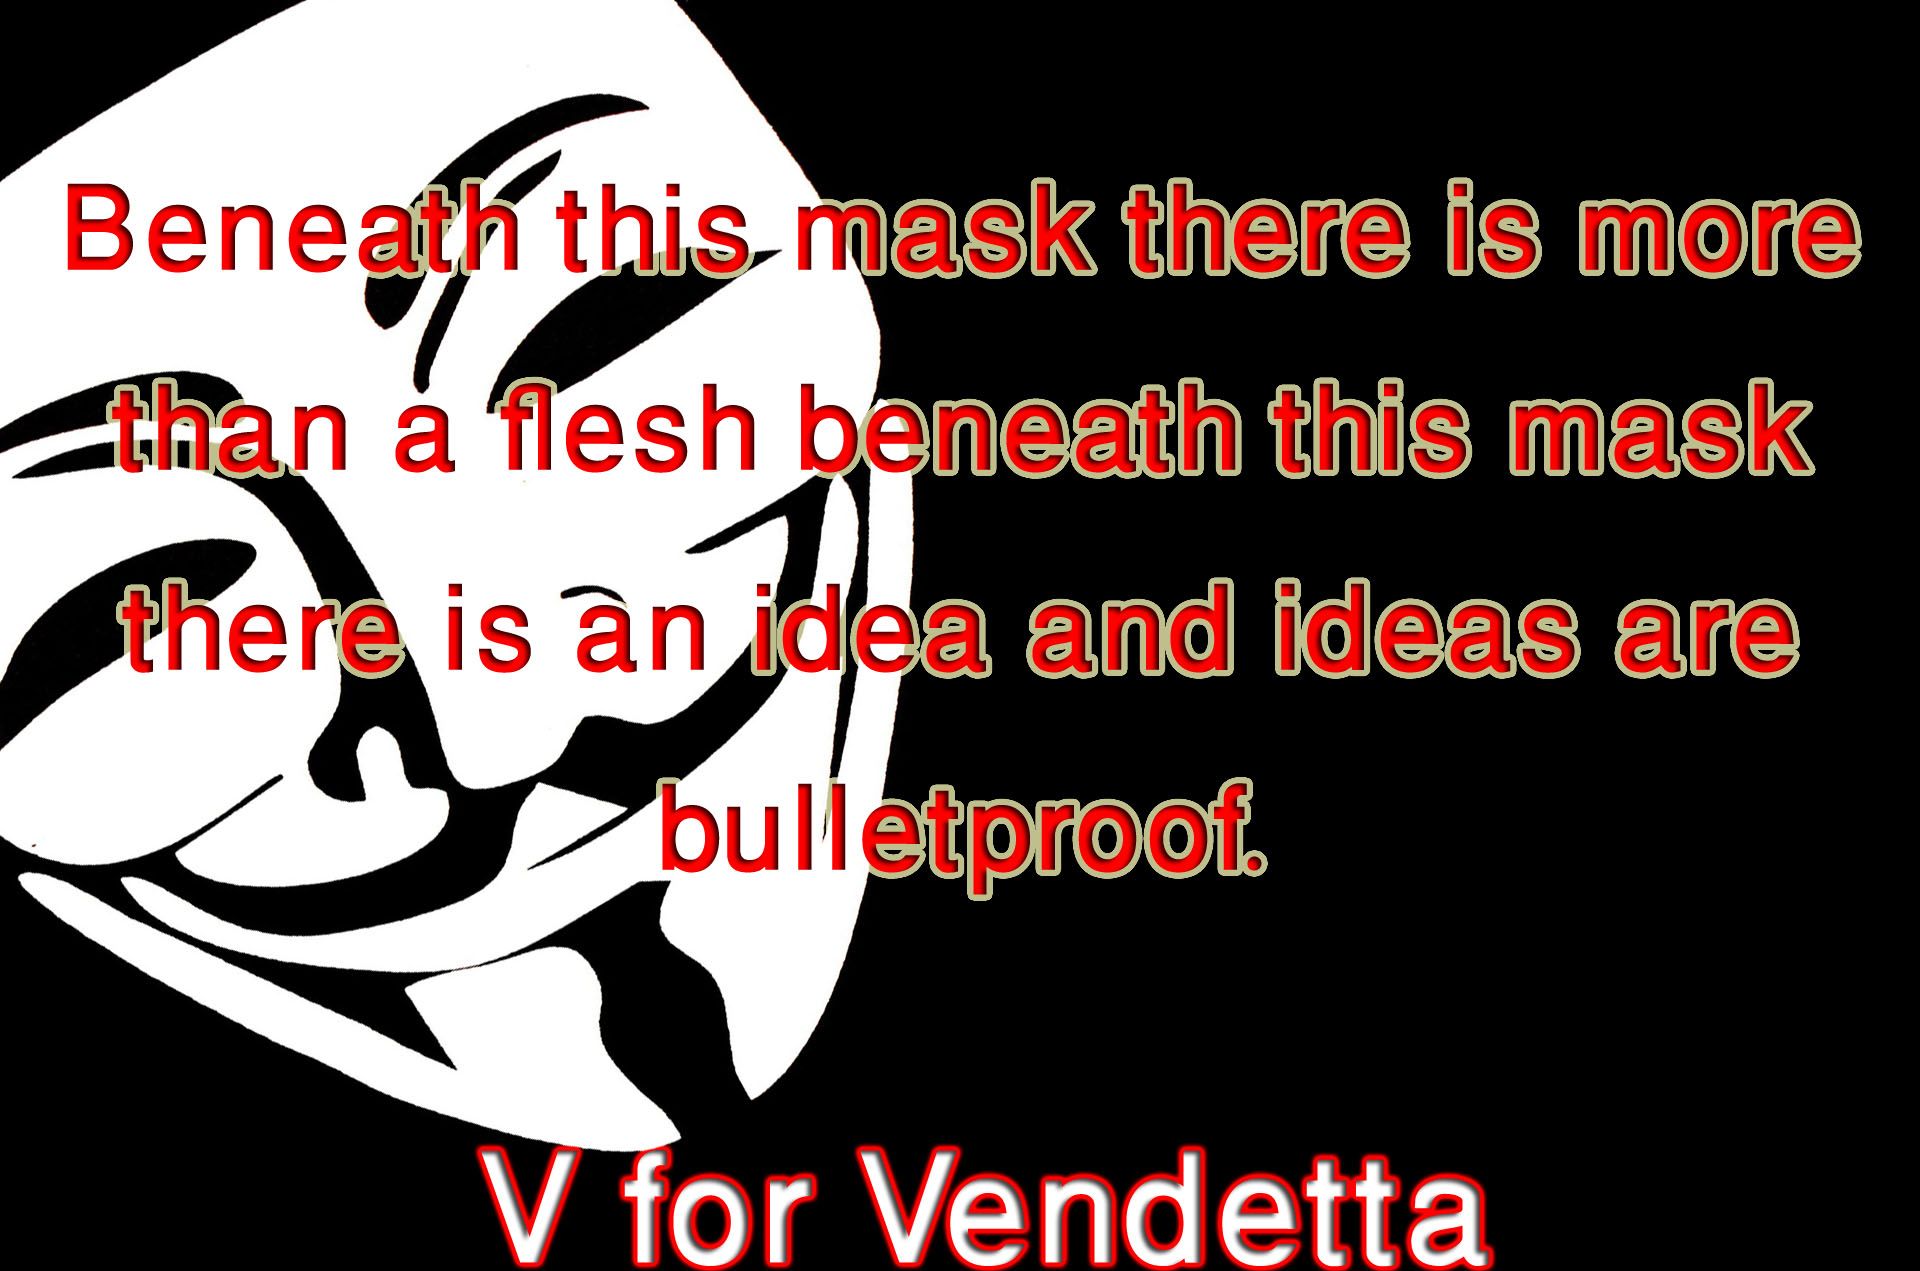 an analysis of government power in v for vendetta movie Dollars & sense power to the paper  the wachowskis acquired the rights to v  for vendetta in the mid-1990s, then promptly  it took nine months of negotiating  with 14 government departments for the filmmakers to gain permission to film on   the network will air every episode from the past 10 seasons, meaning that in .